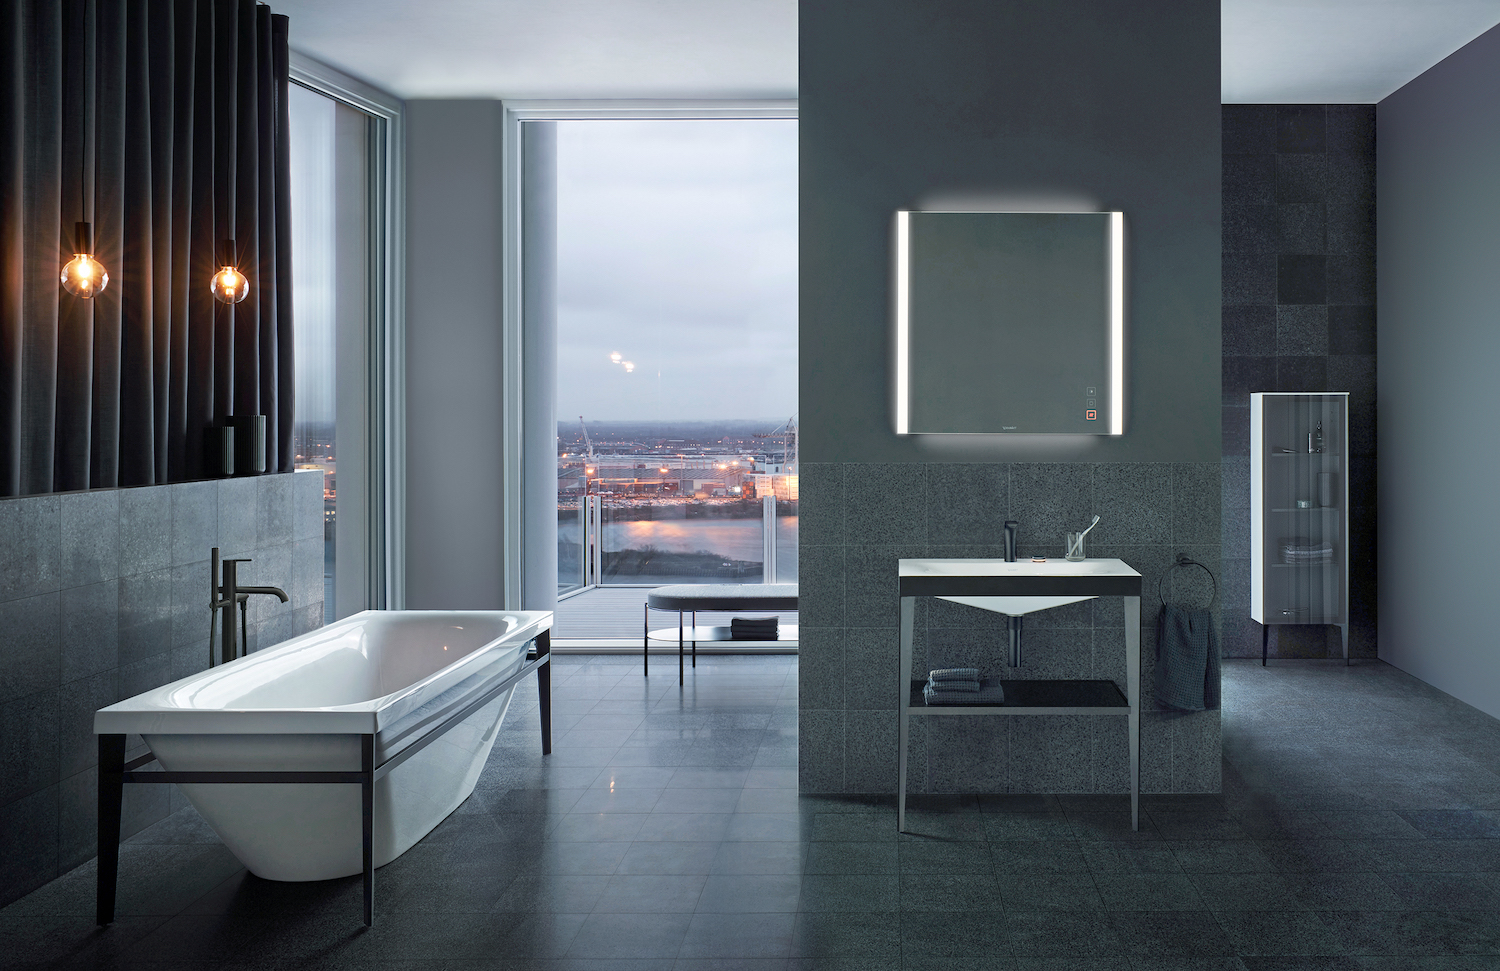 Connected technologies bring luxurious features to the bathroom.